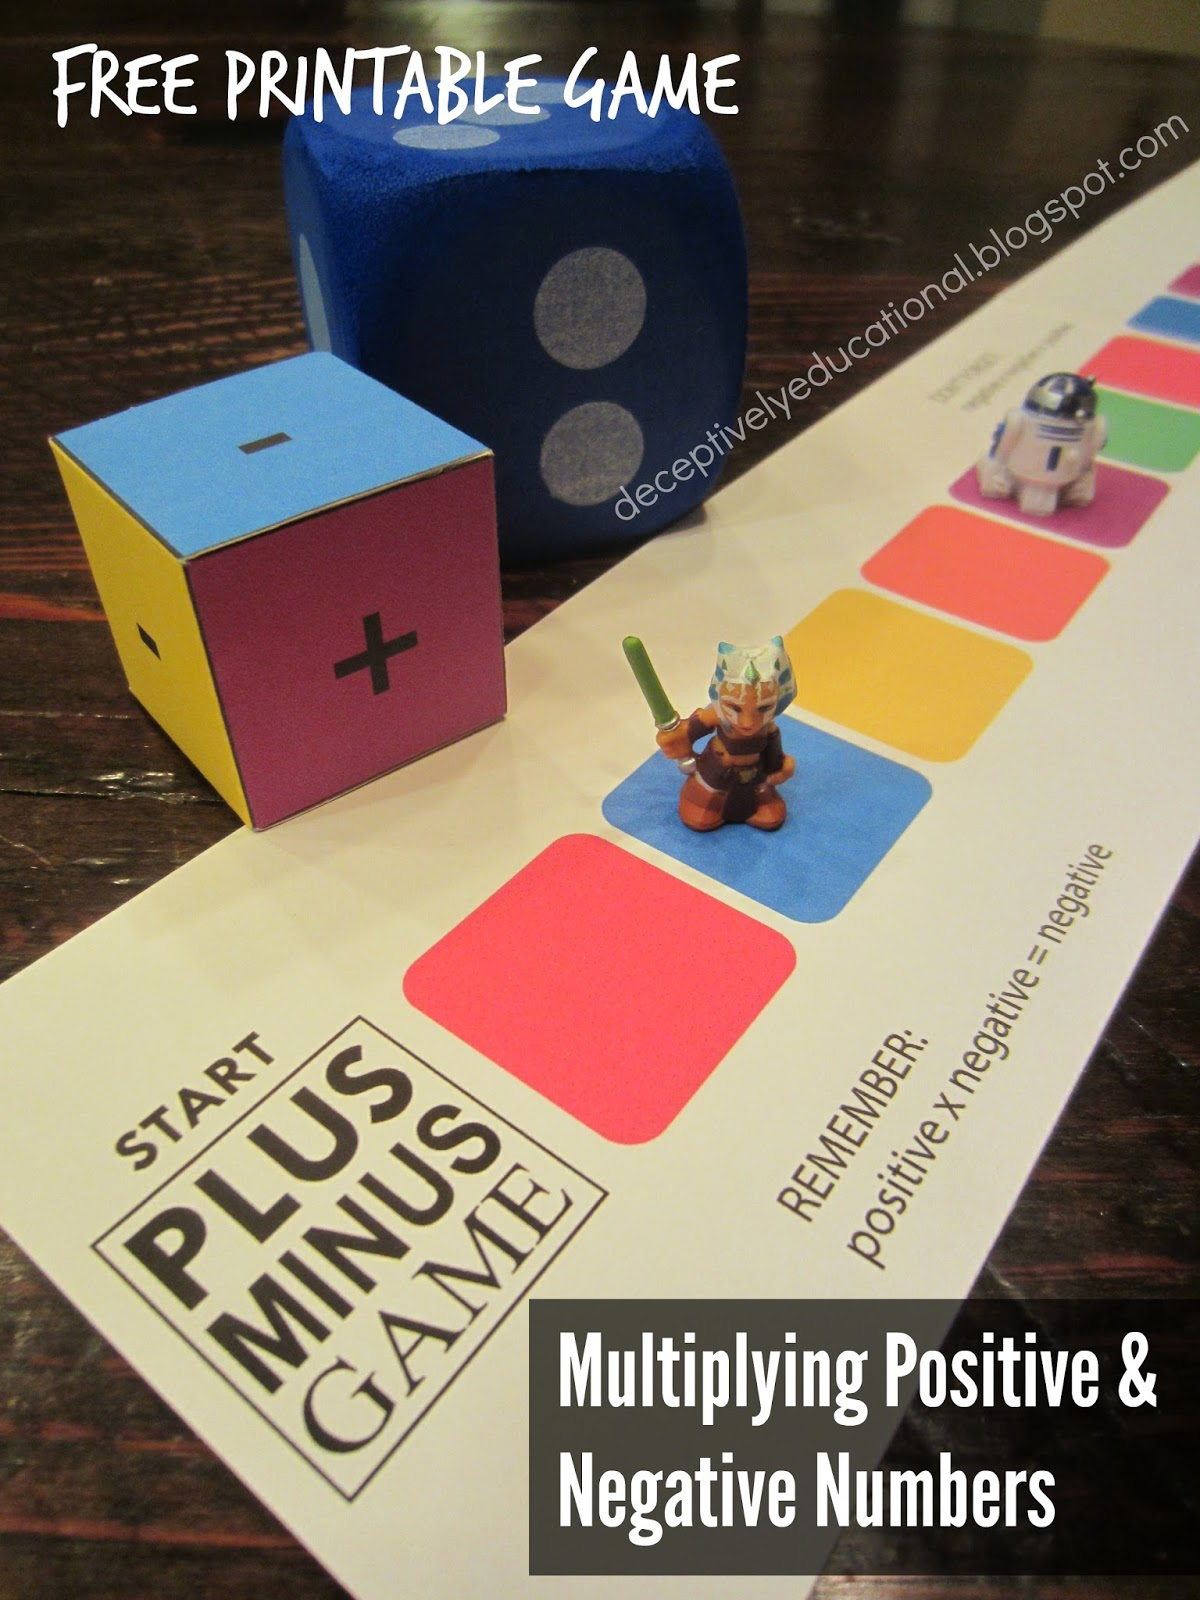 Relentlessly Fun Deceptively Educational Plus Minus Printable Game Multiplying Positive